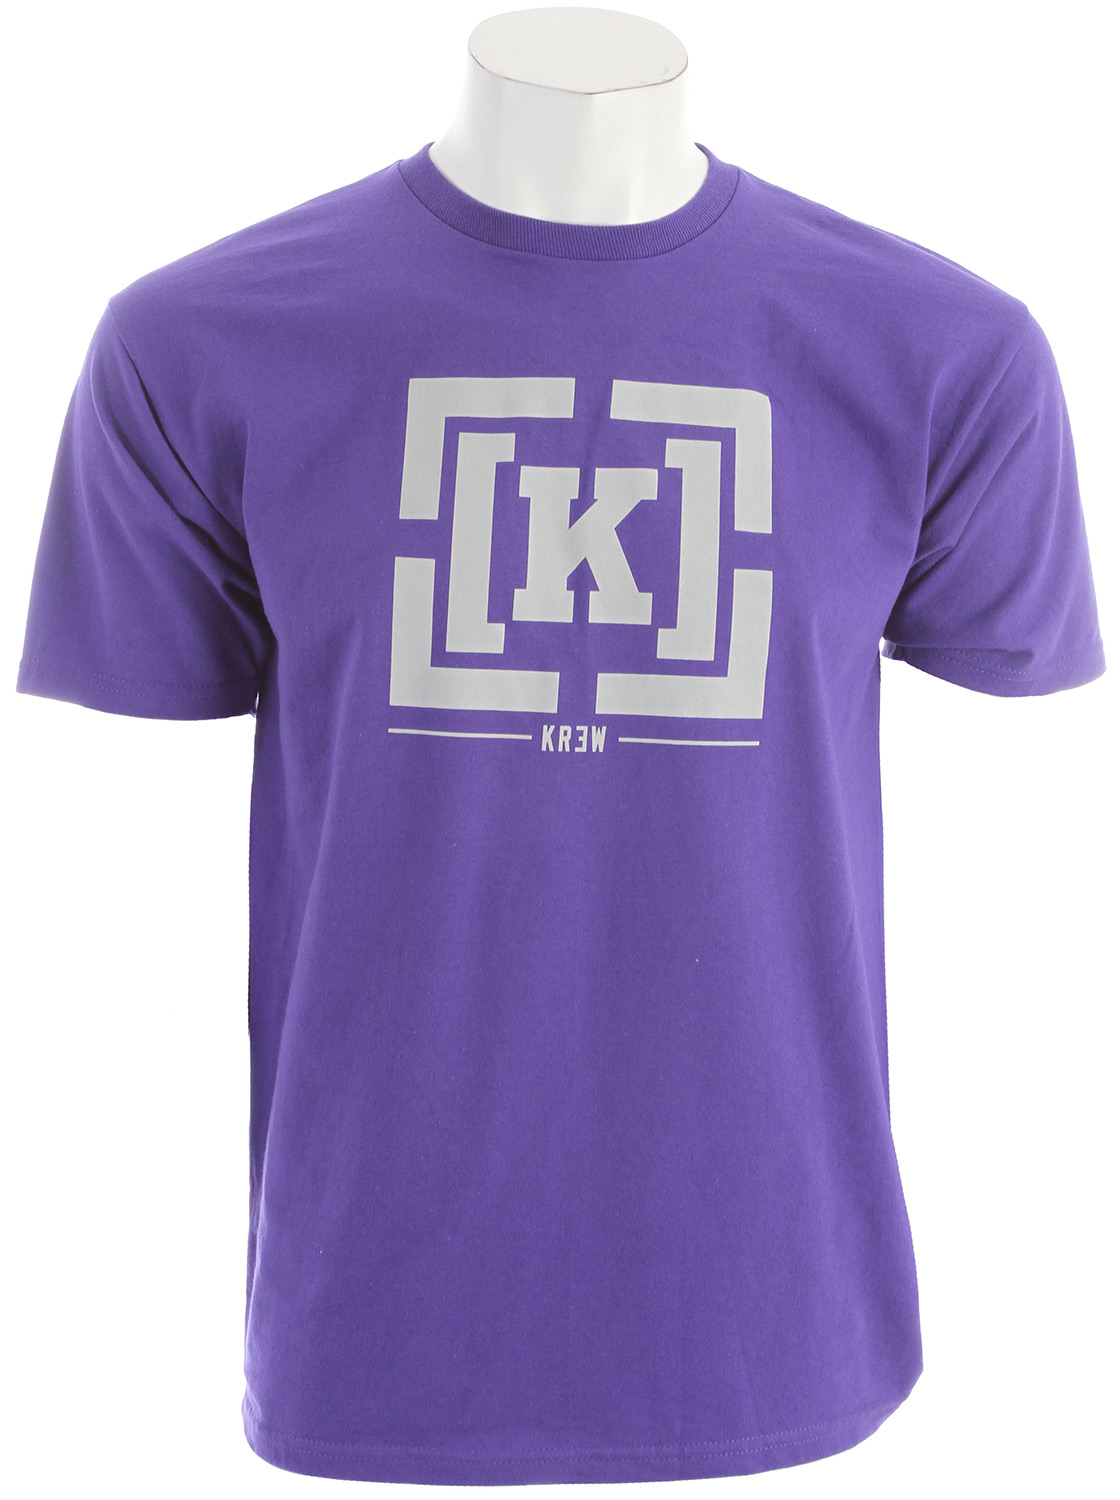 Be the leader of your crew by rocking the classic KR3W Bracket Regular T-Shirt.Key Features of the KR3W Bracket Regular T-Shirt: 100% cotton 30 singles regular - $16.95